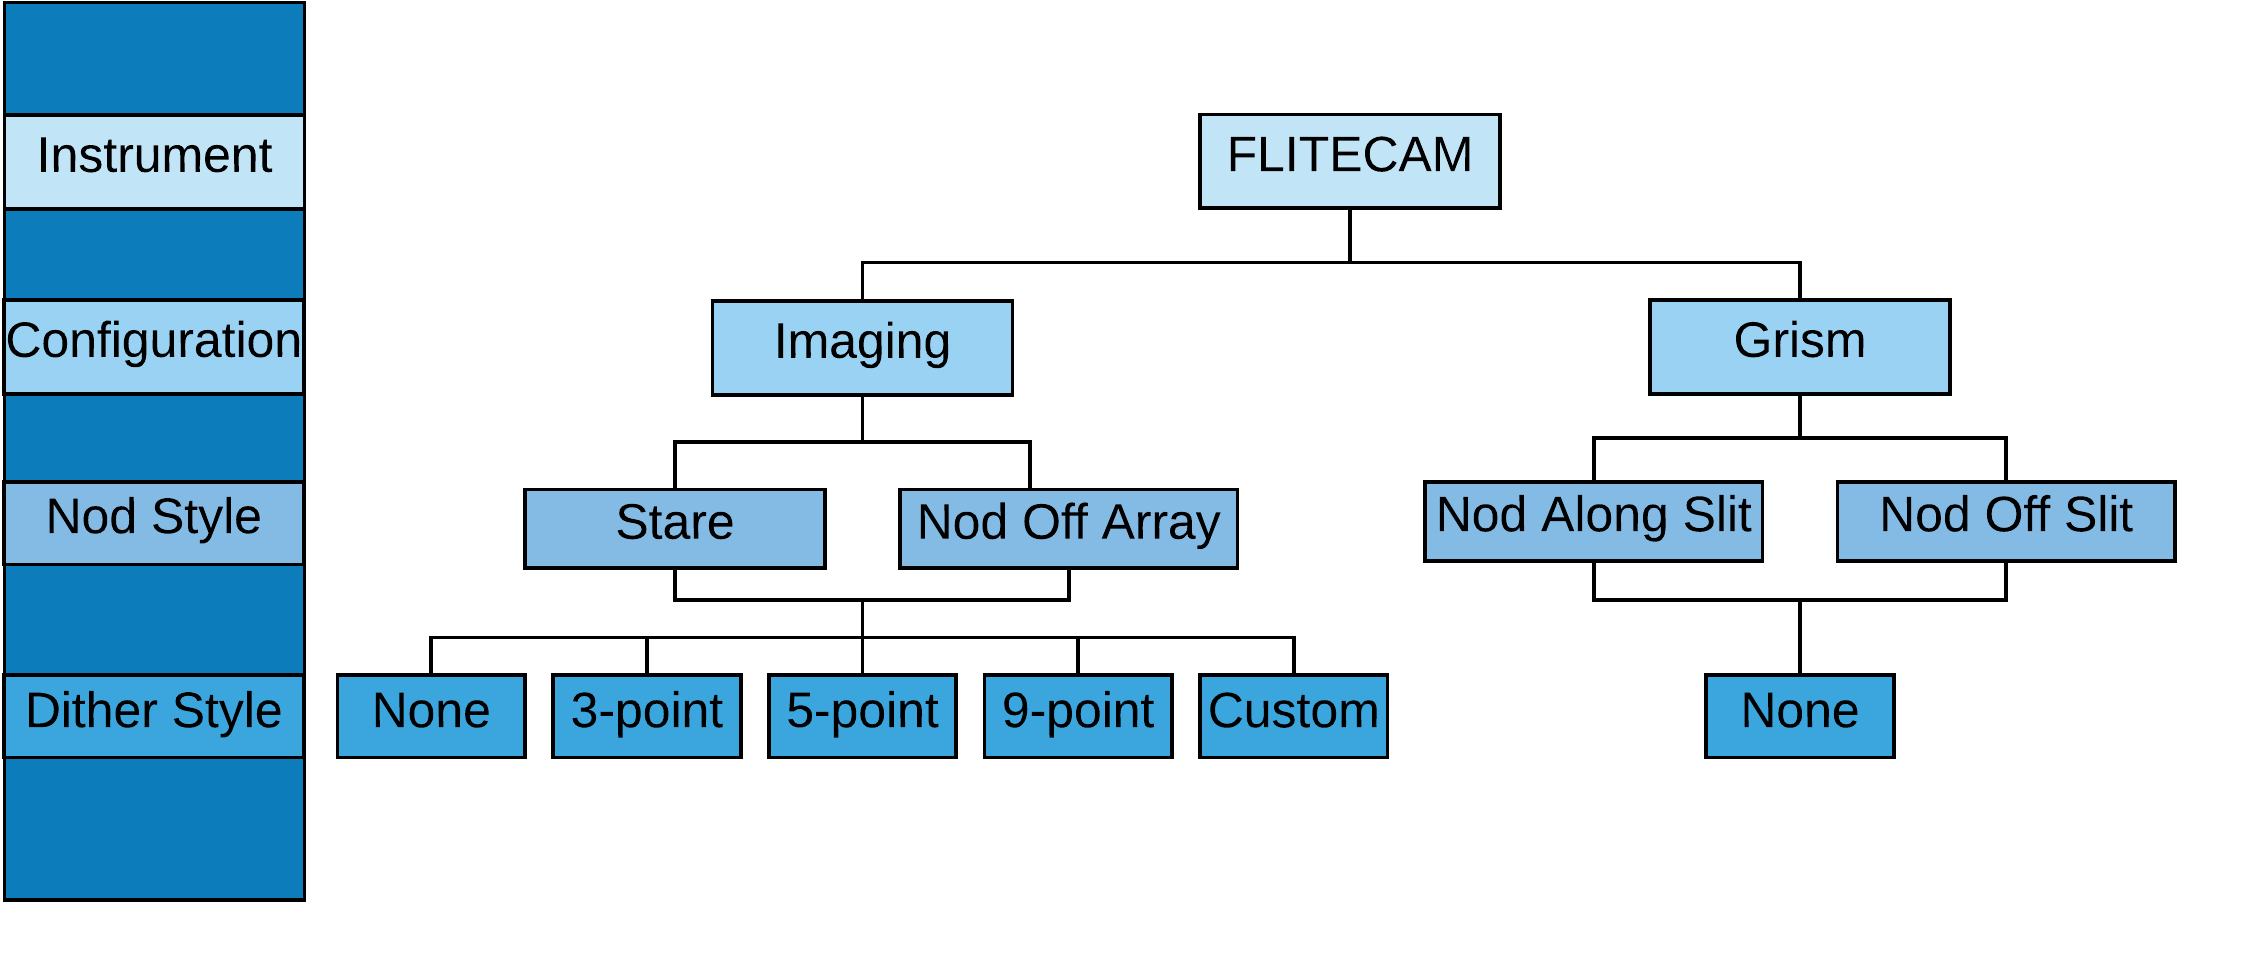 FLITECAM configuration and style flow chart diagram